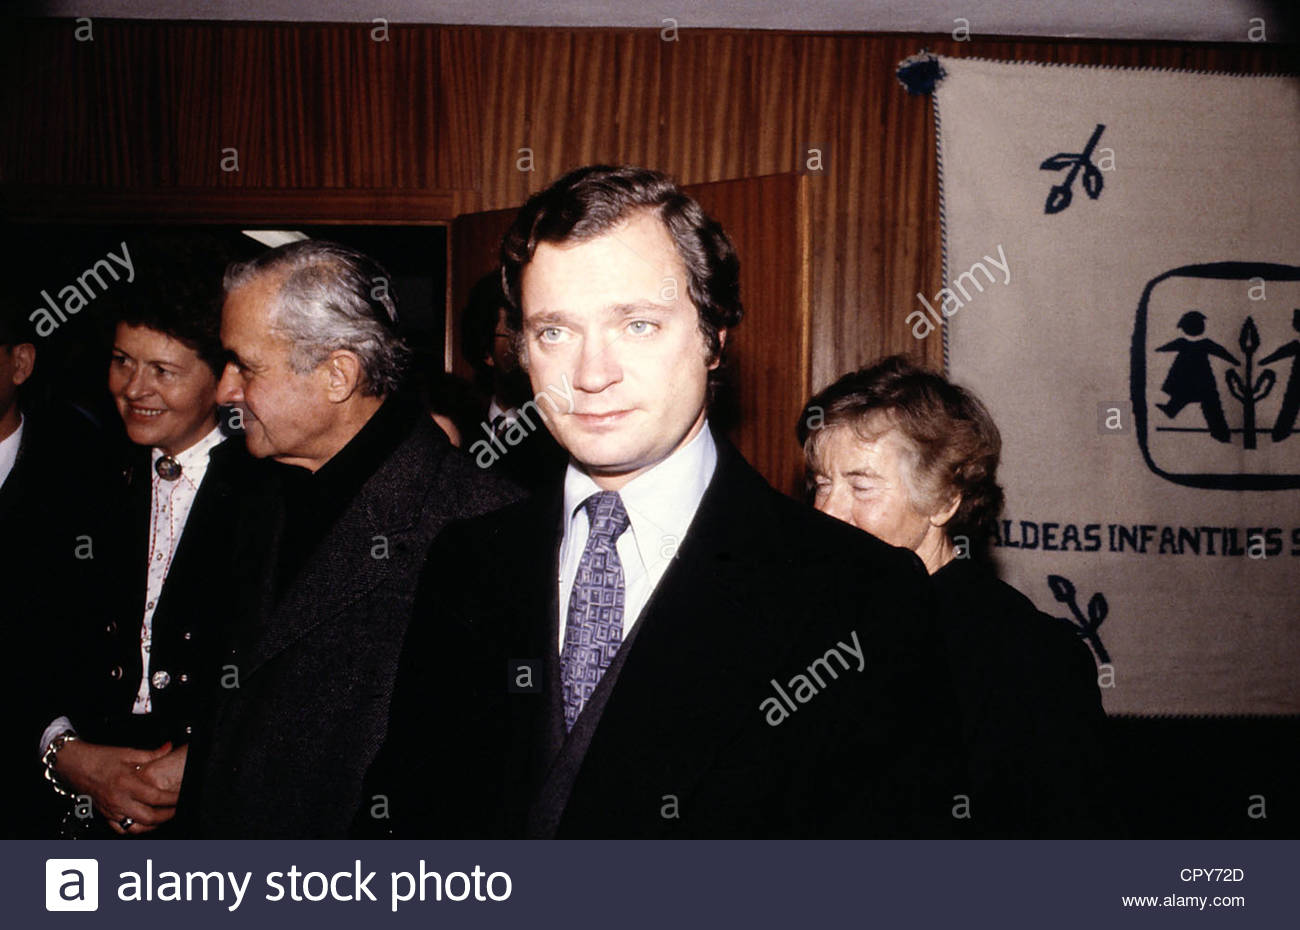 Carl XVI Gustaf, * 30.4.1946, King of Sweden since 1973, portrait, during a visit to Germany, 1980s, tie, 80s, - Stock Image